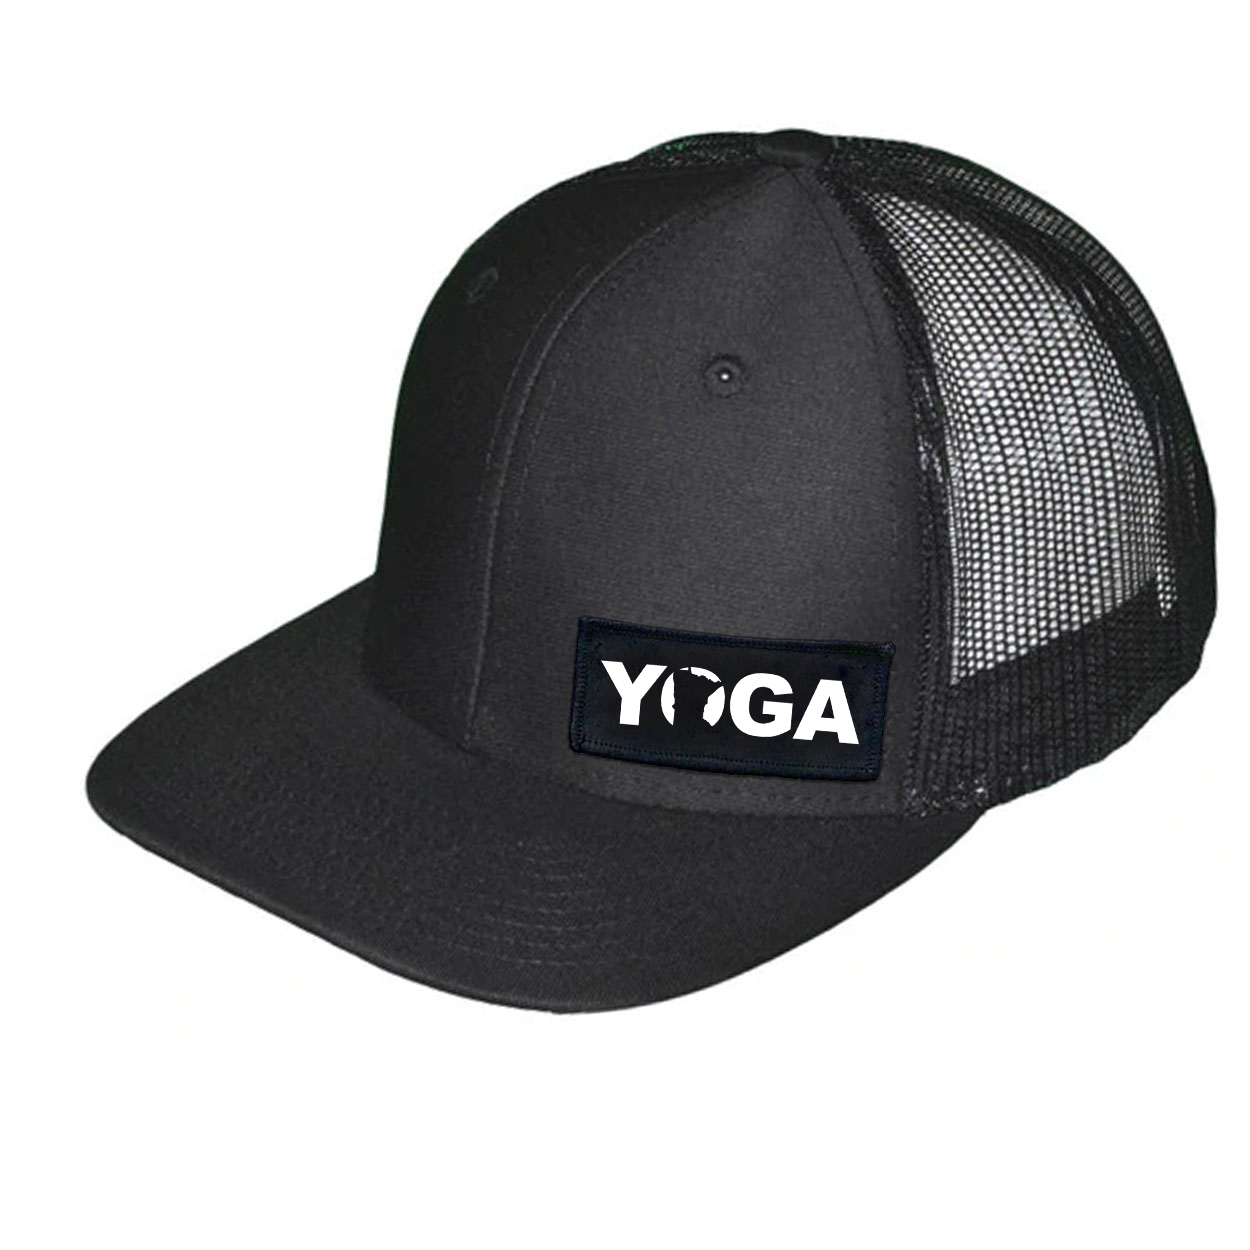 Yoga Minnesota Night Out Woven Patch Snapback Trucker Hat Black (White Logo)